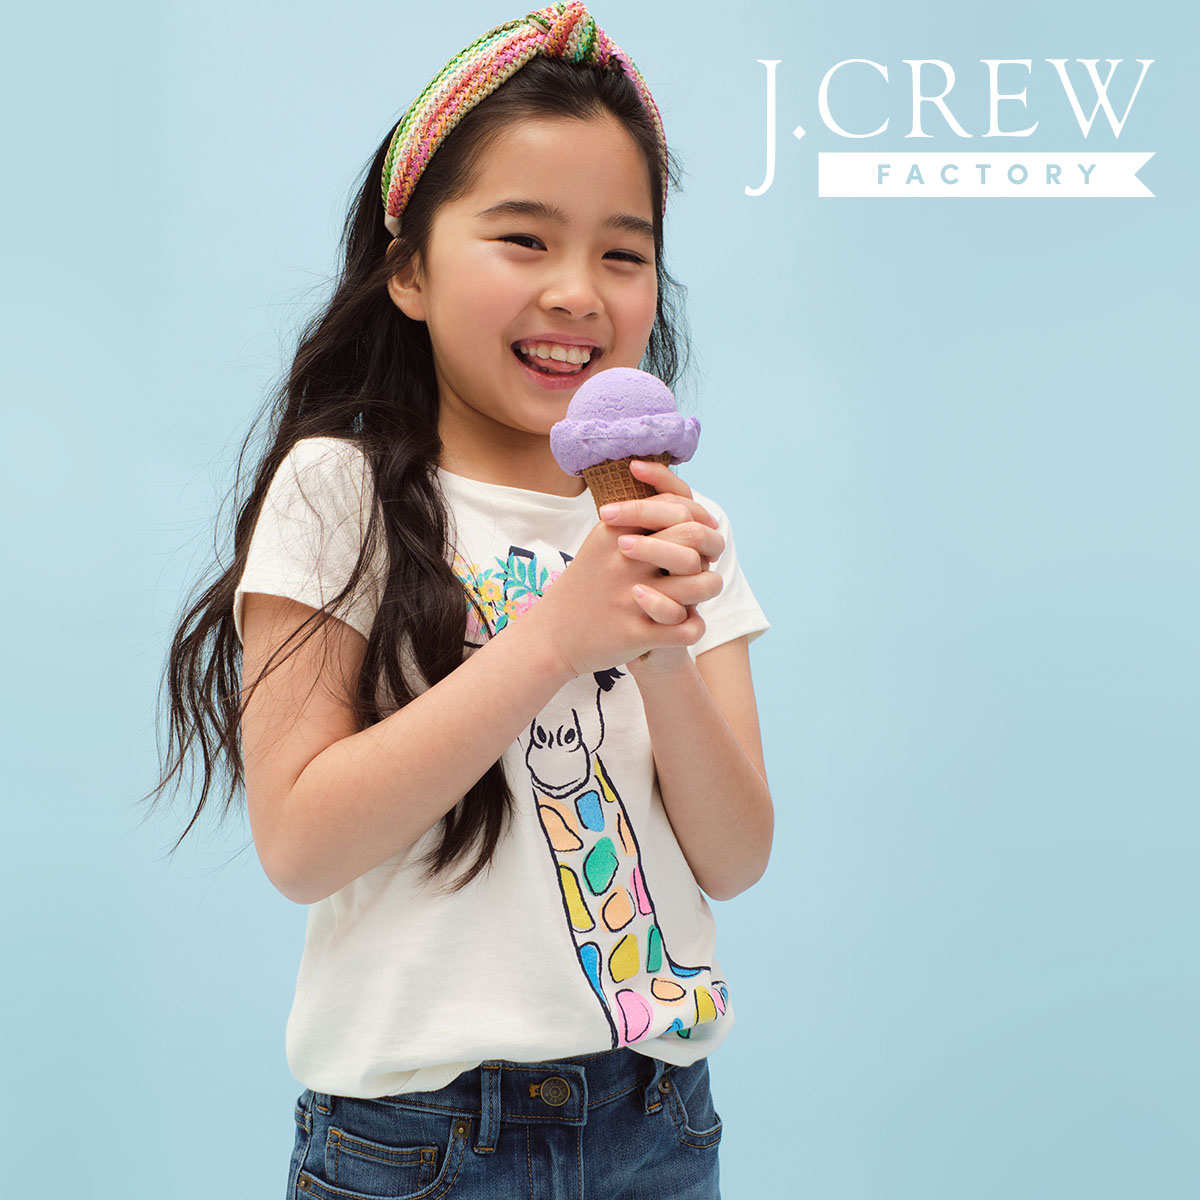 UP TO 50% OFF STOREWIDE + EXTRA 60% OFF CLEARANCE AT J.CREW FACTORY! from J.Crew Factory